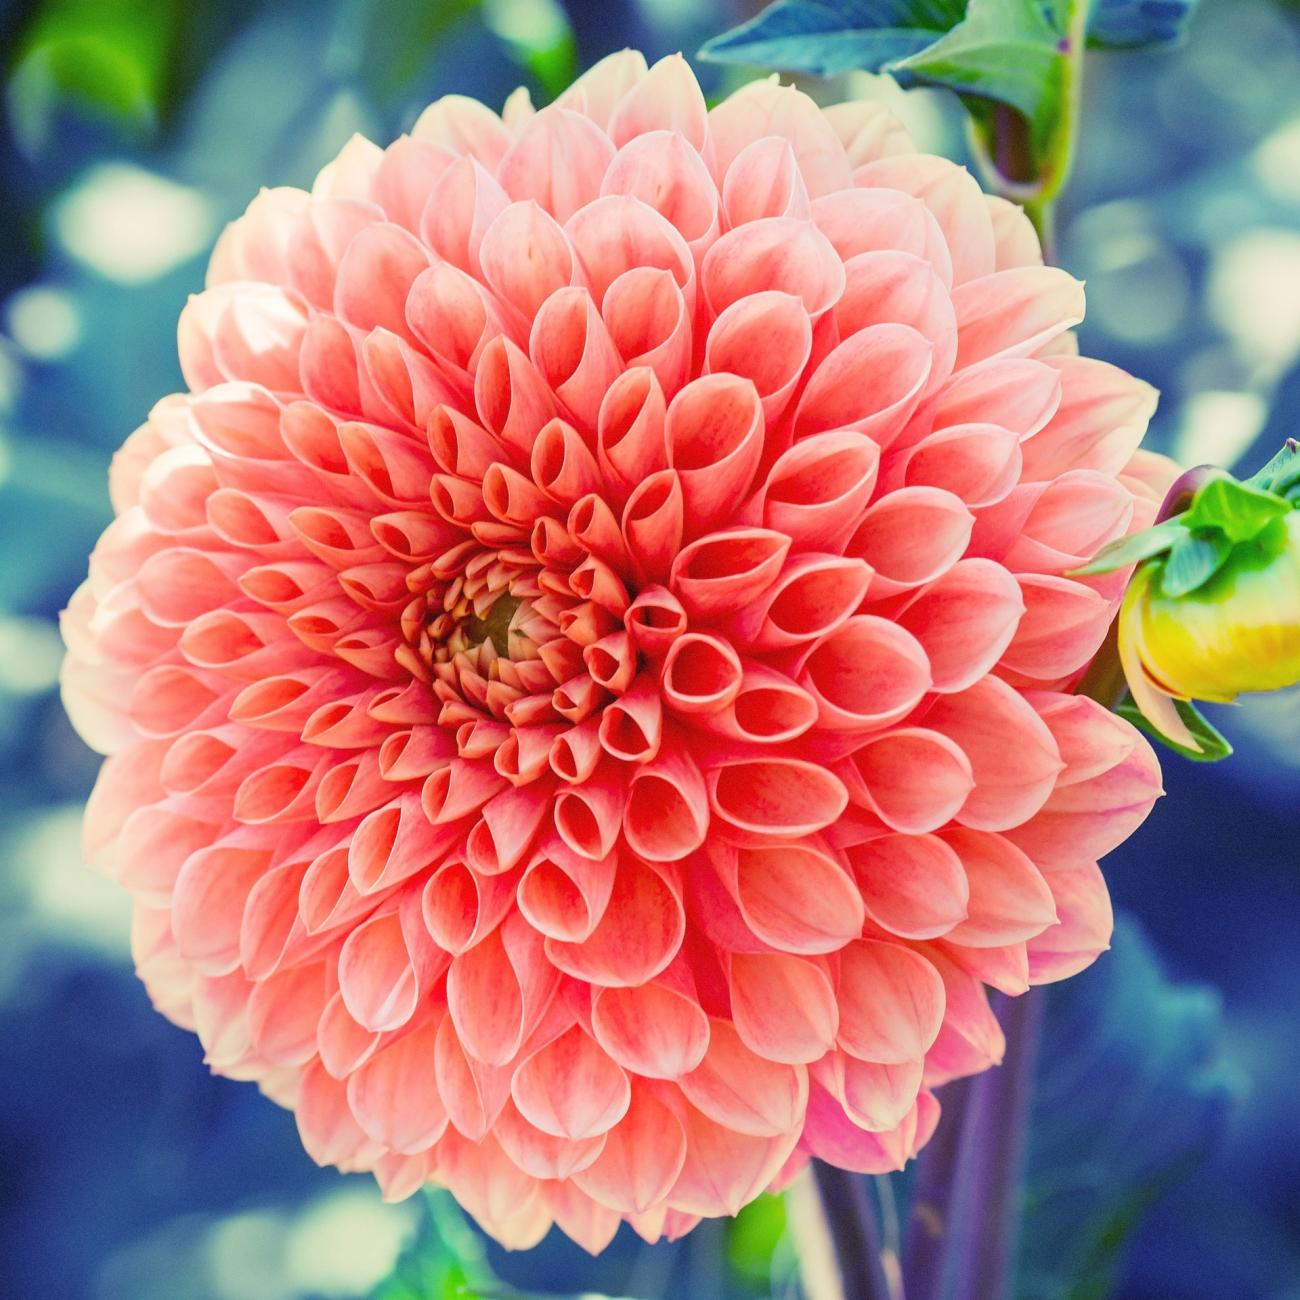 Growing Guide: Spring-Planted Bulbs - Dahlia - Pixabay